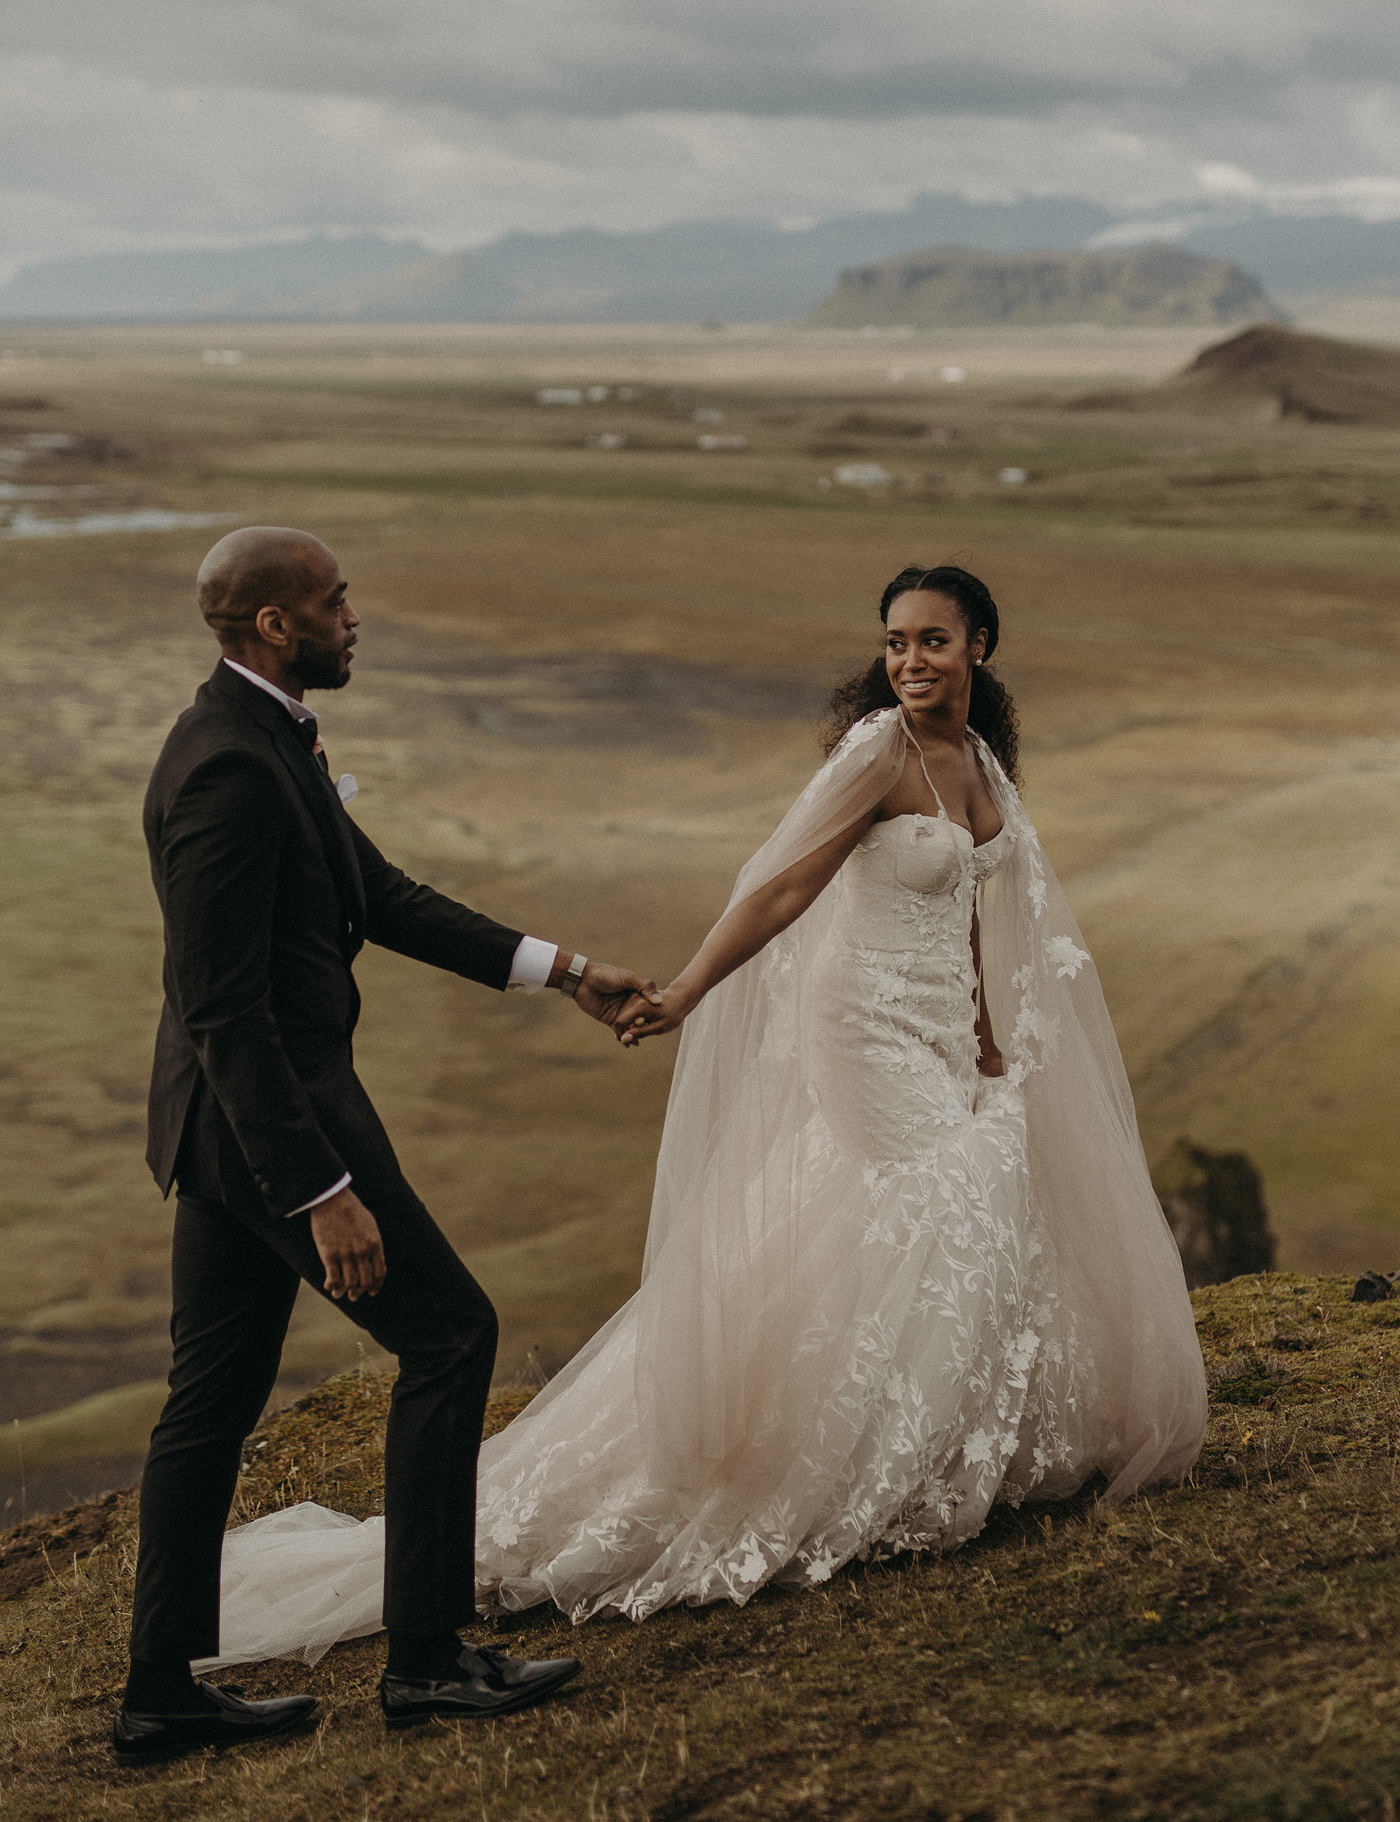 A Blush Bridal Cape for This Adventurous Cliffside Wedding in Iceland